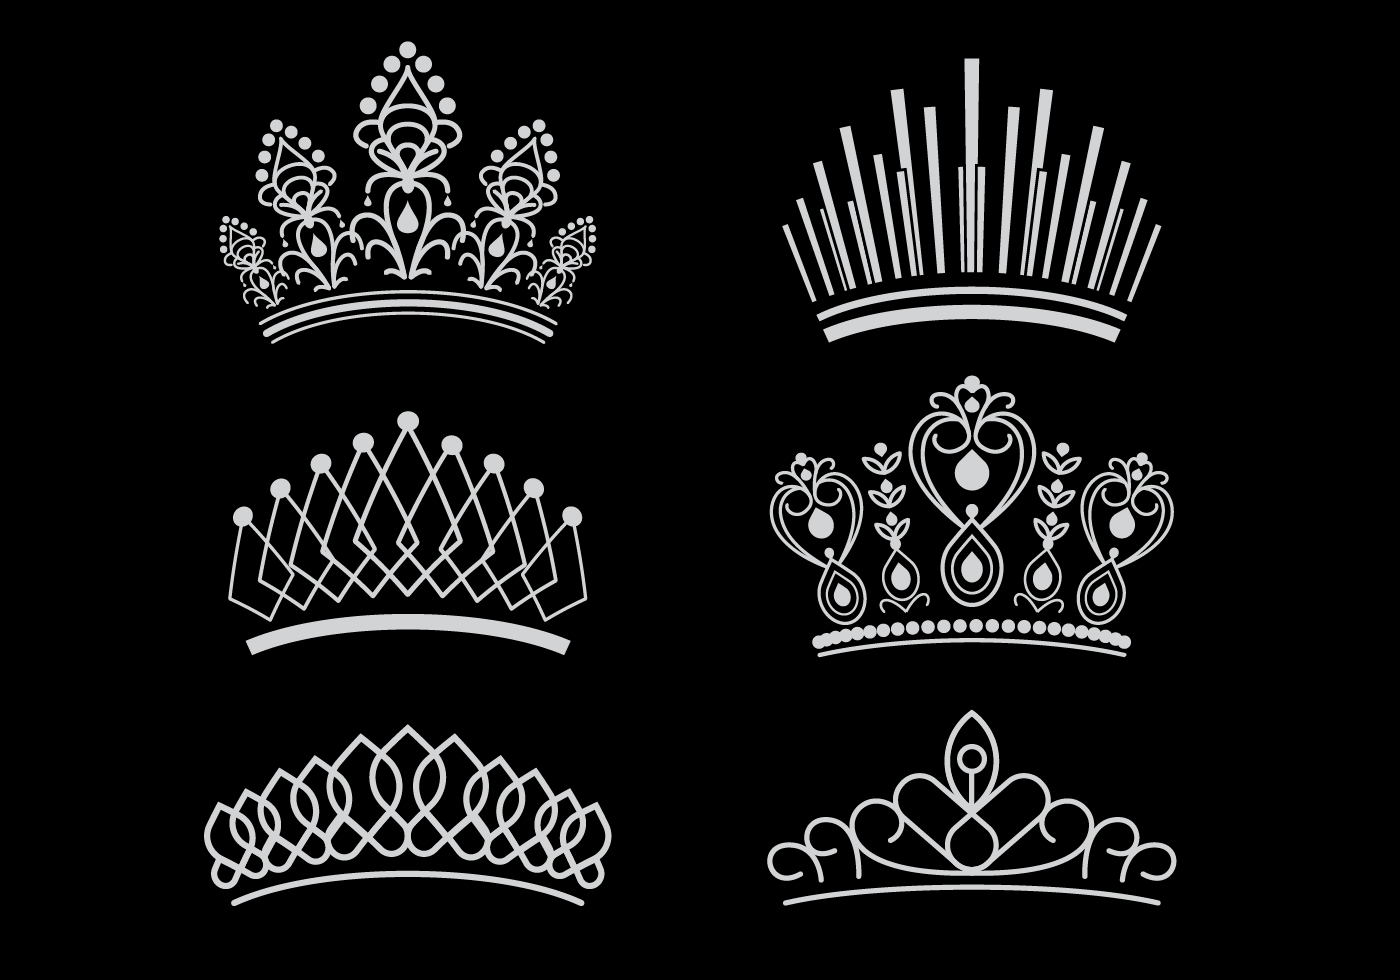 free pageant crown vectors download free vector art crown vector editing crown vector file